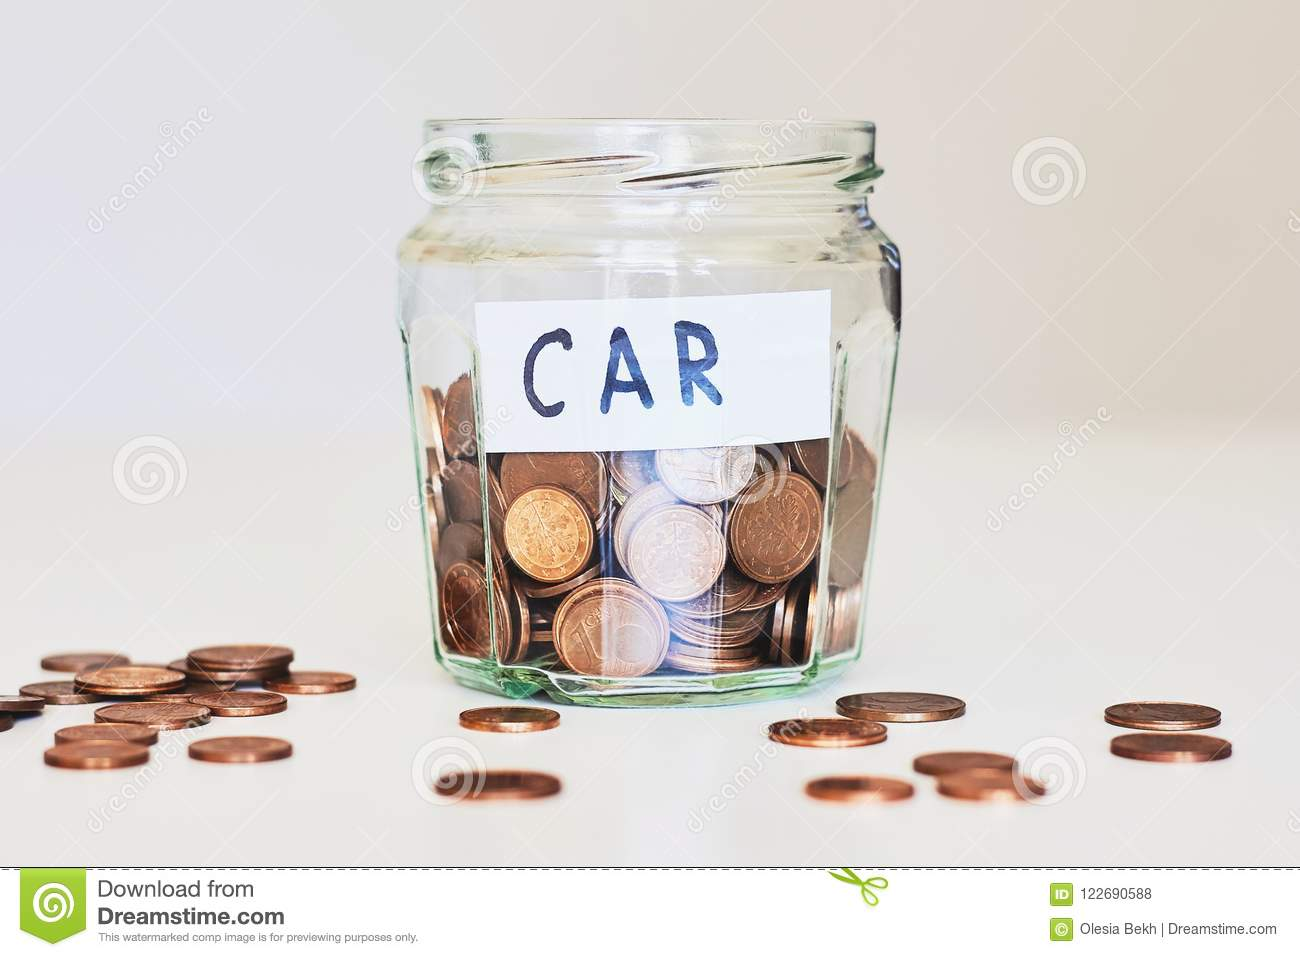 Car loan, car insurance concept. Glass jar full of coins and paper sign car